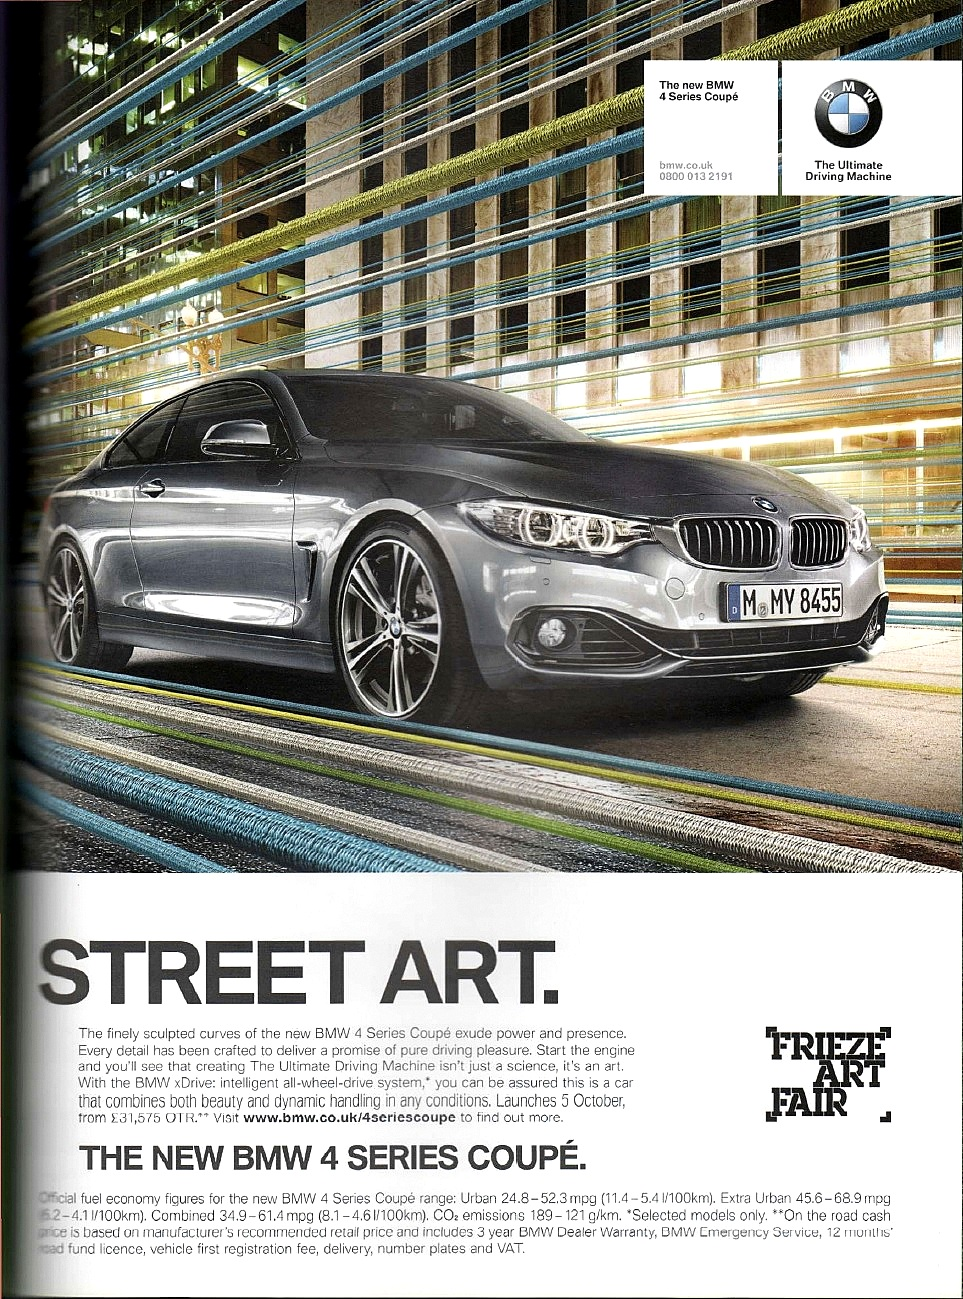 BMW Ad Capaign 2013 - published in  Frieze  magazine, October 2013